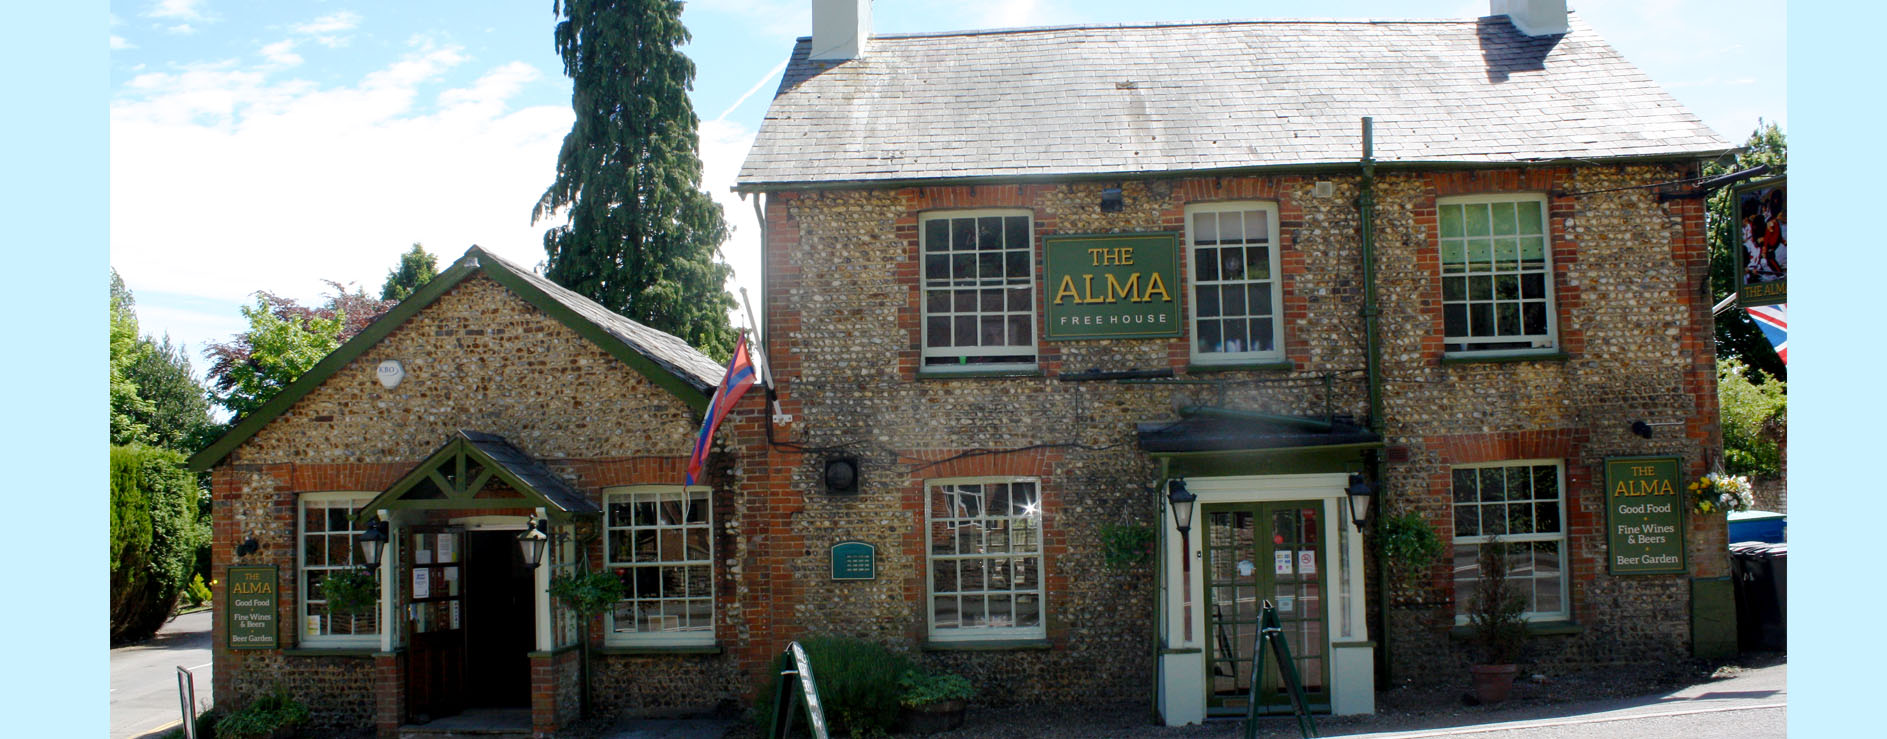 The Alma Public House